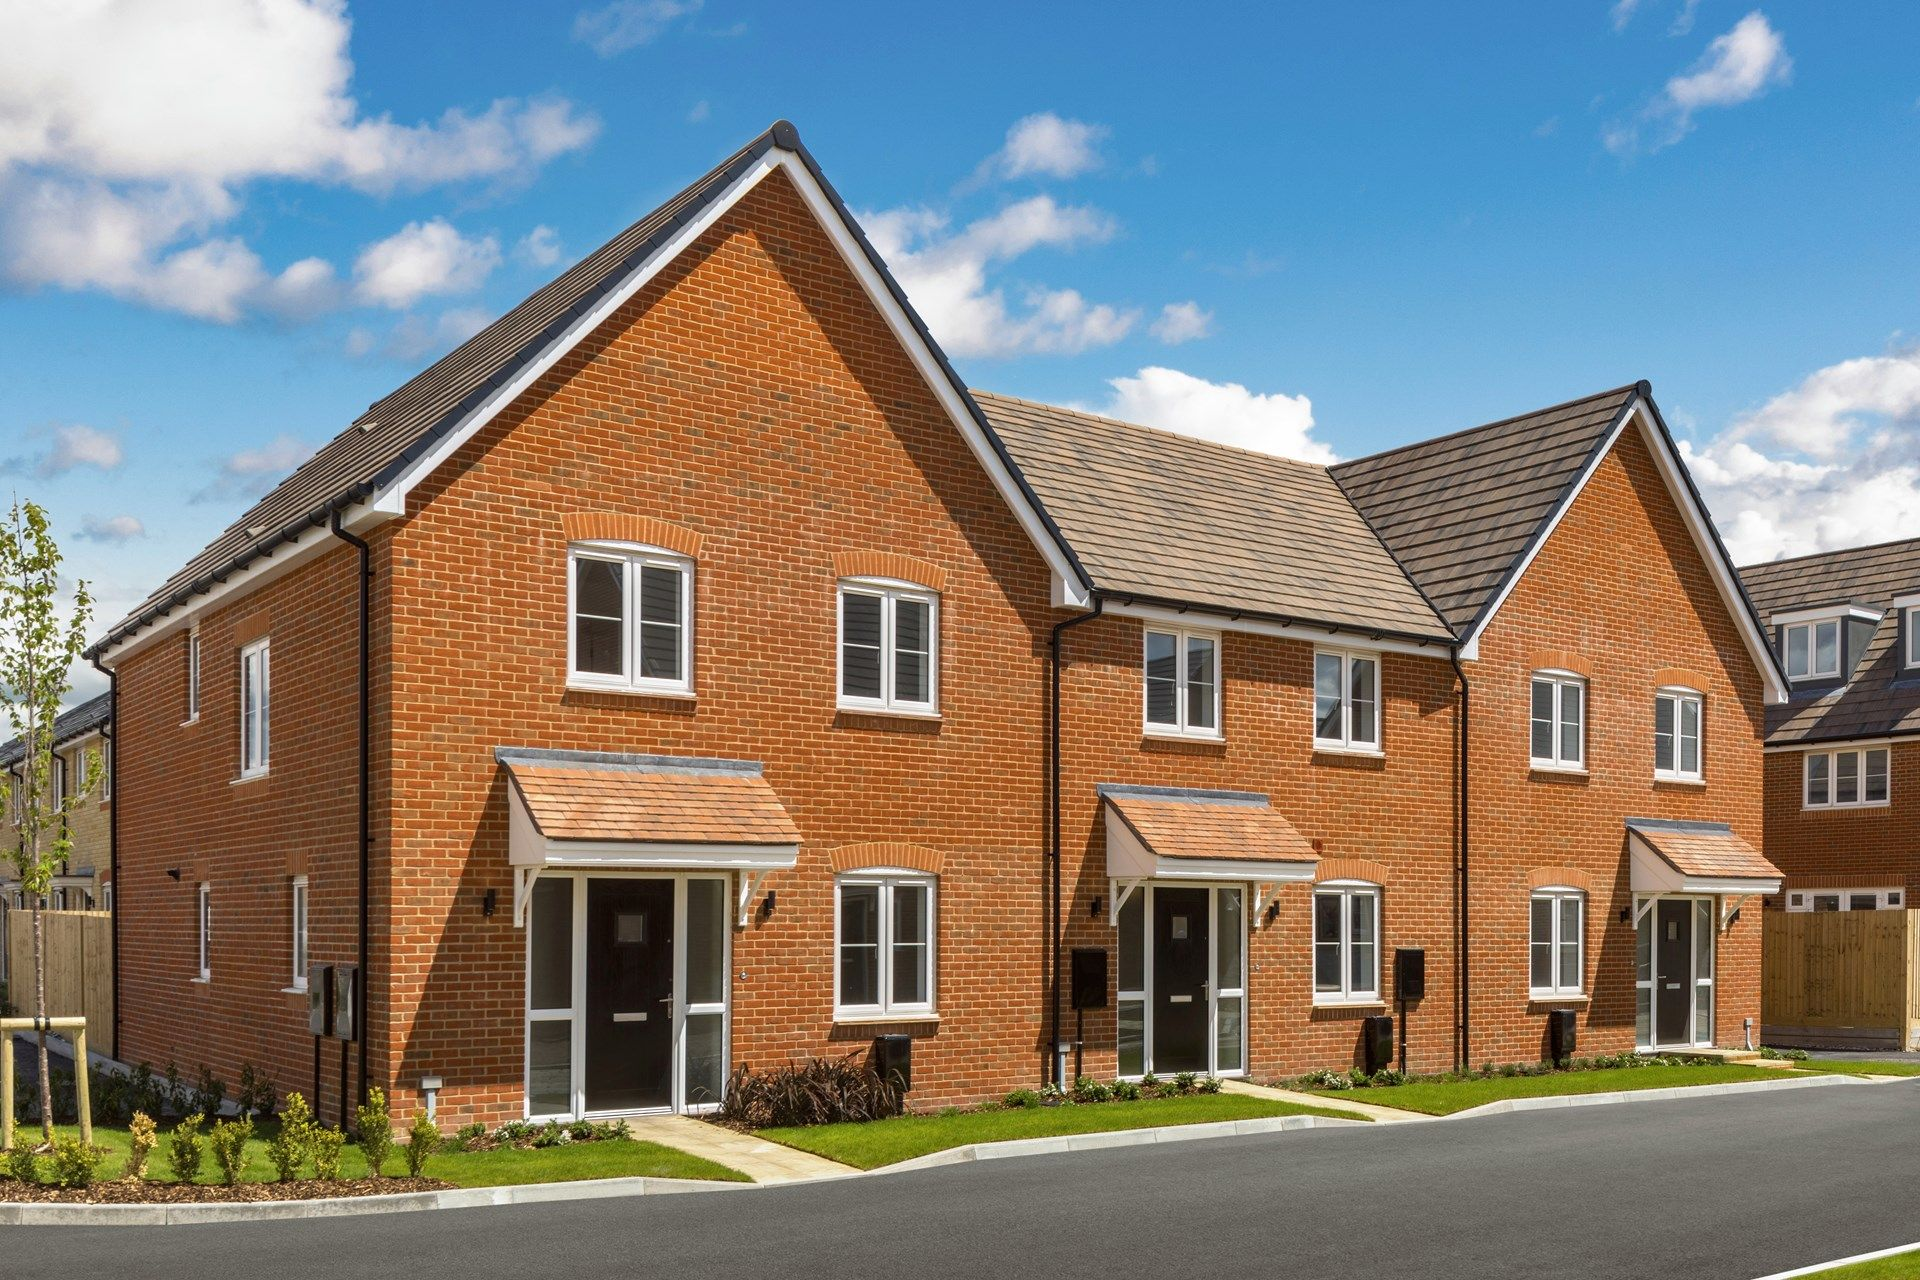 Property photo 1 of 10. Shopwyke Lakes, Chichester